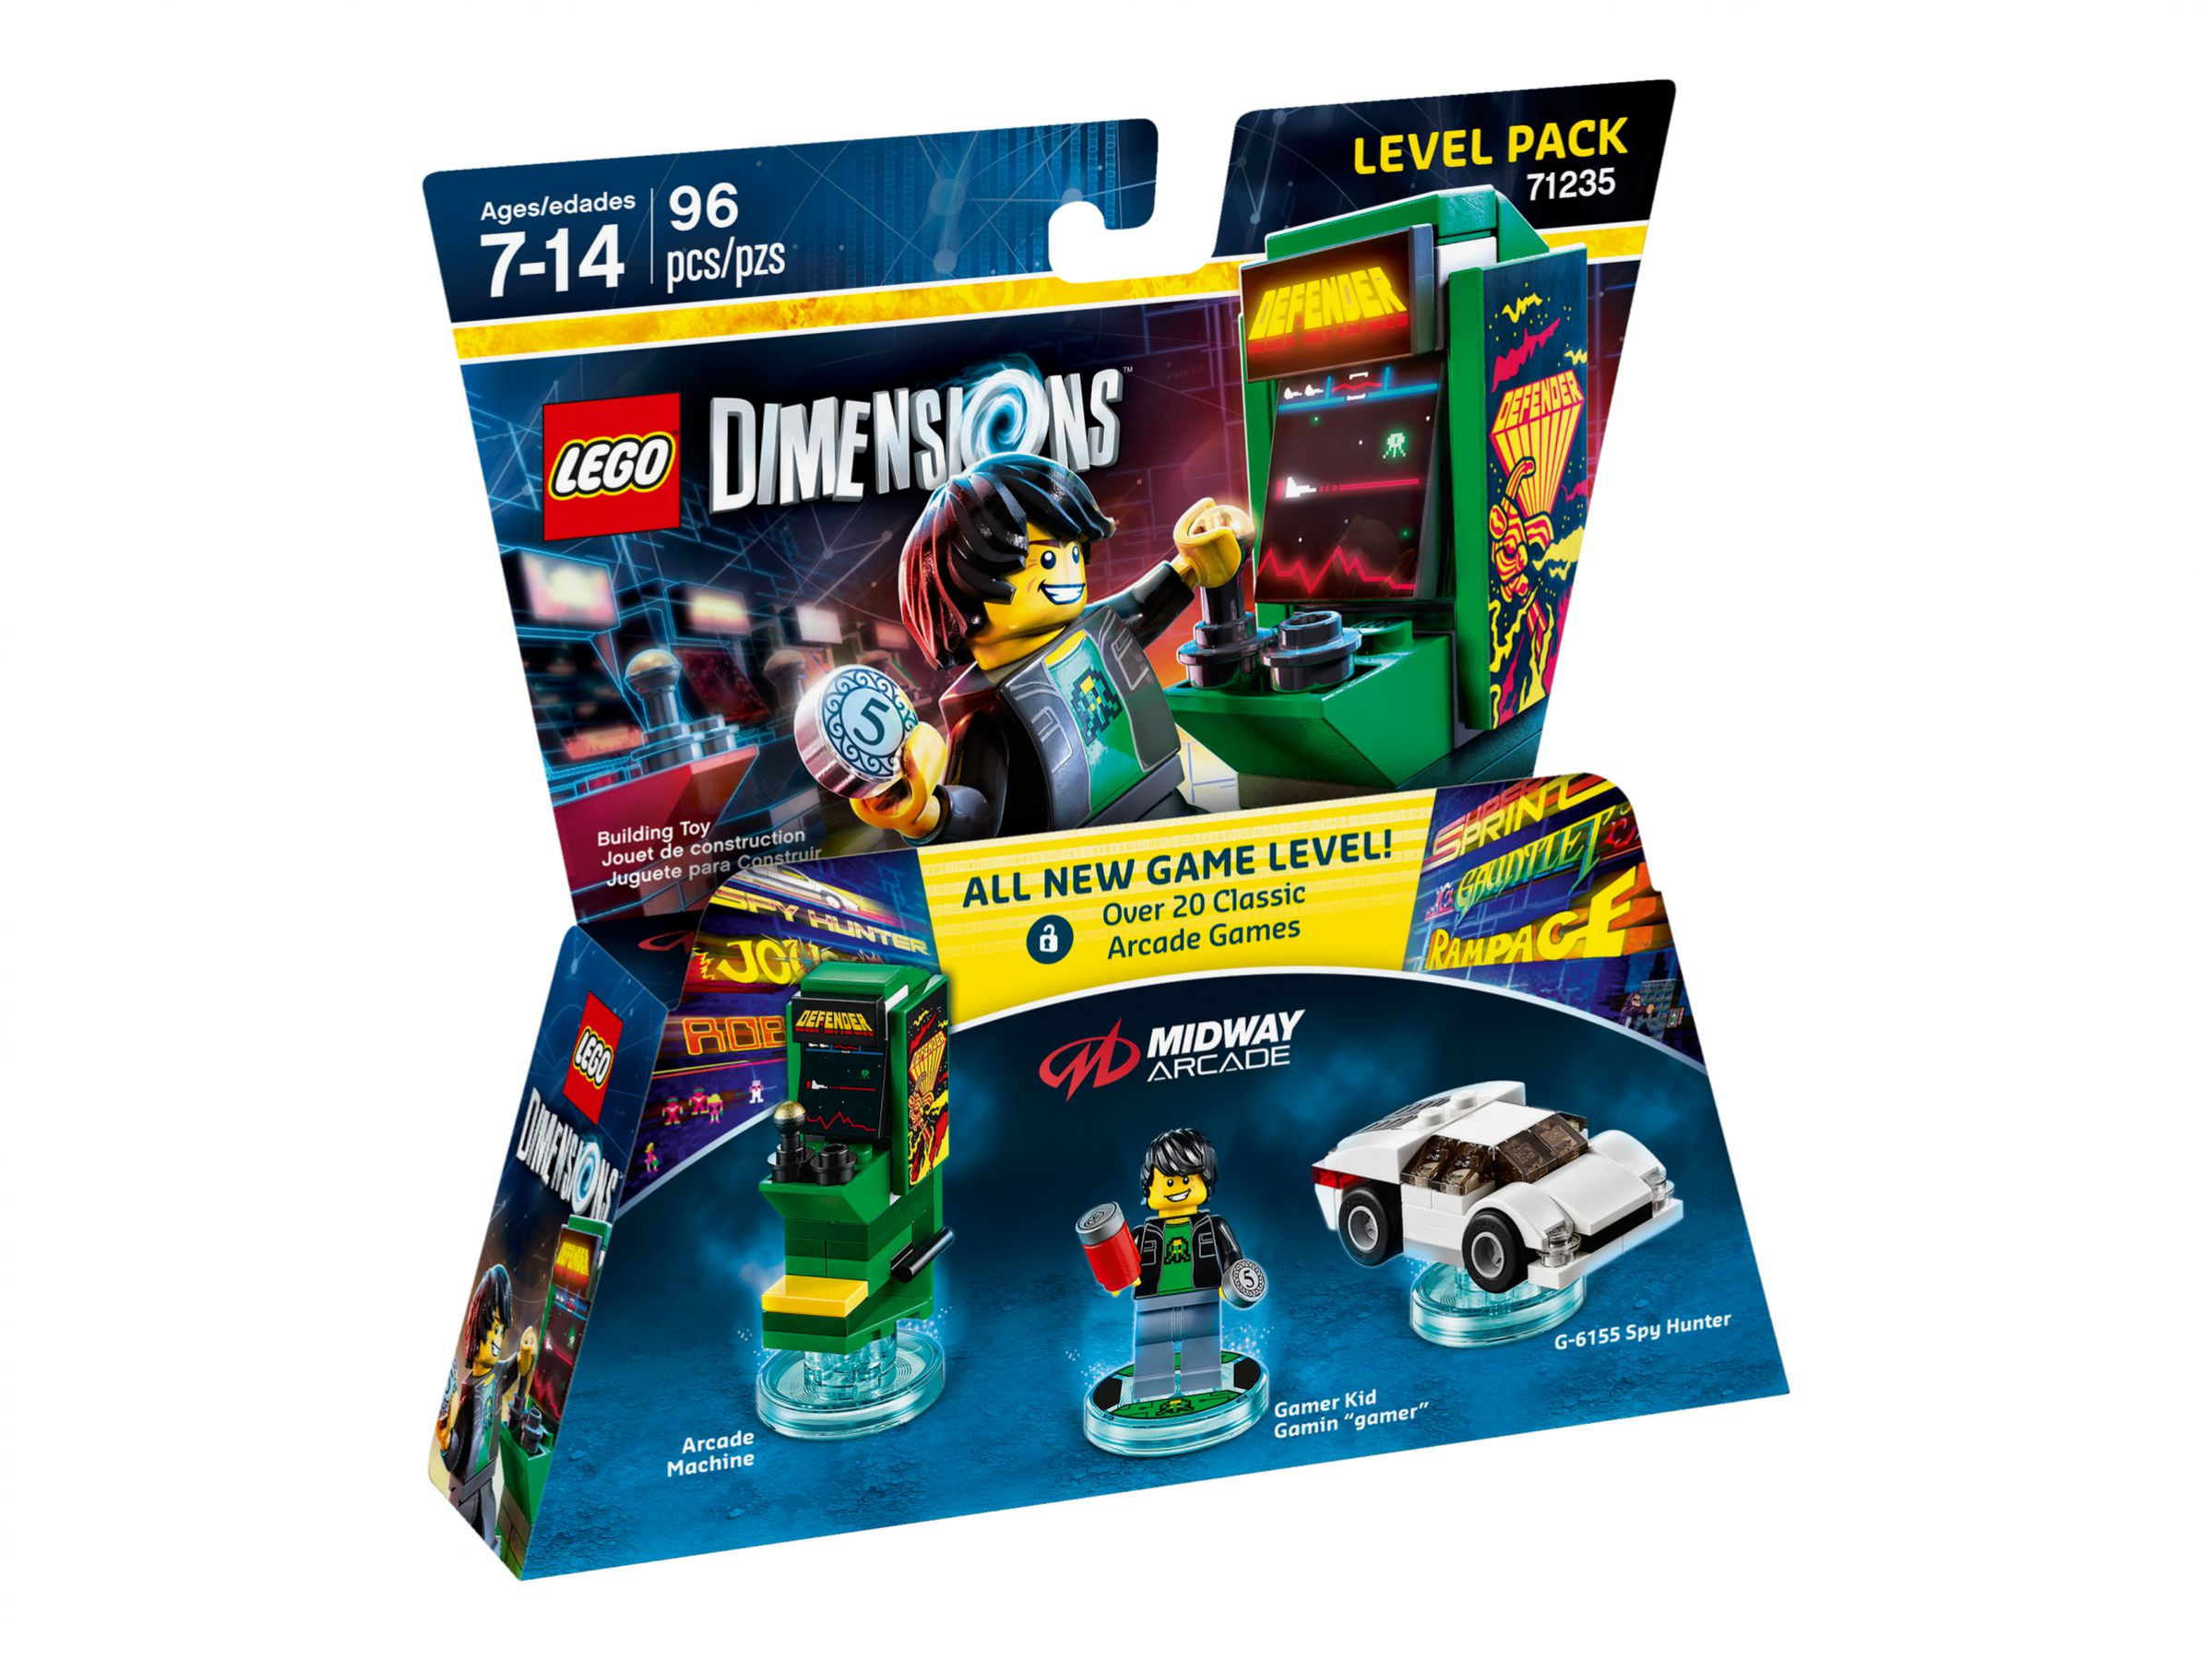 LEGO Dimensions 71235 Level Pack Midway Arcade